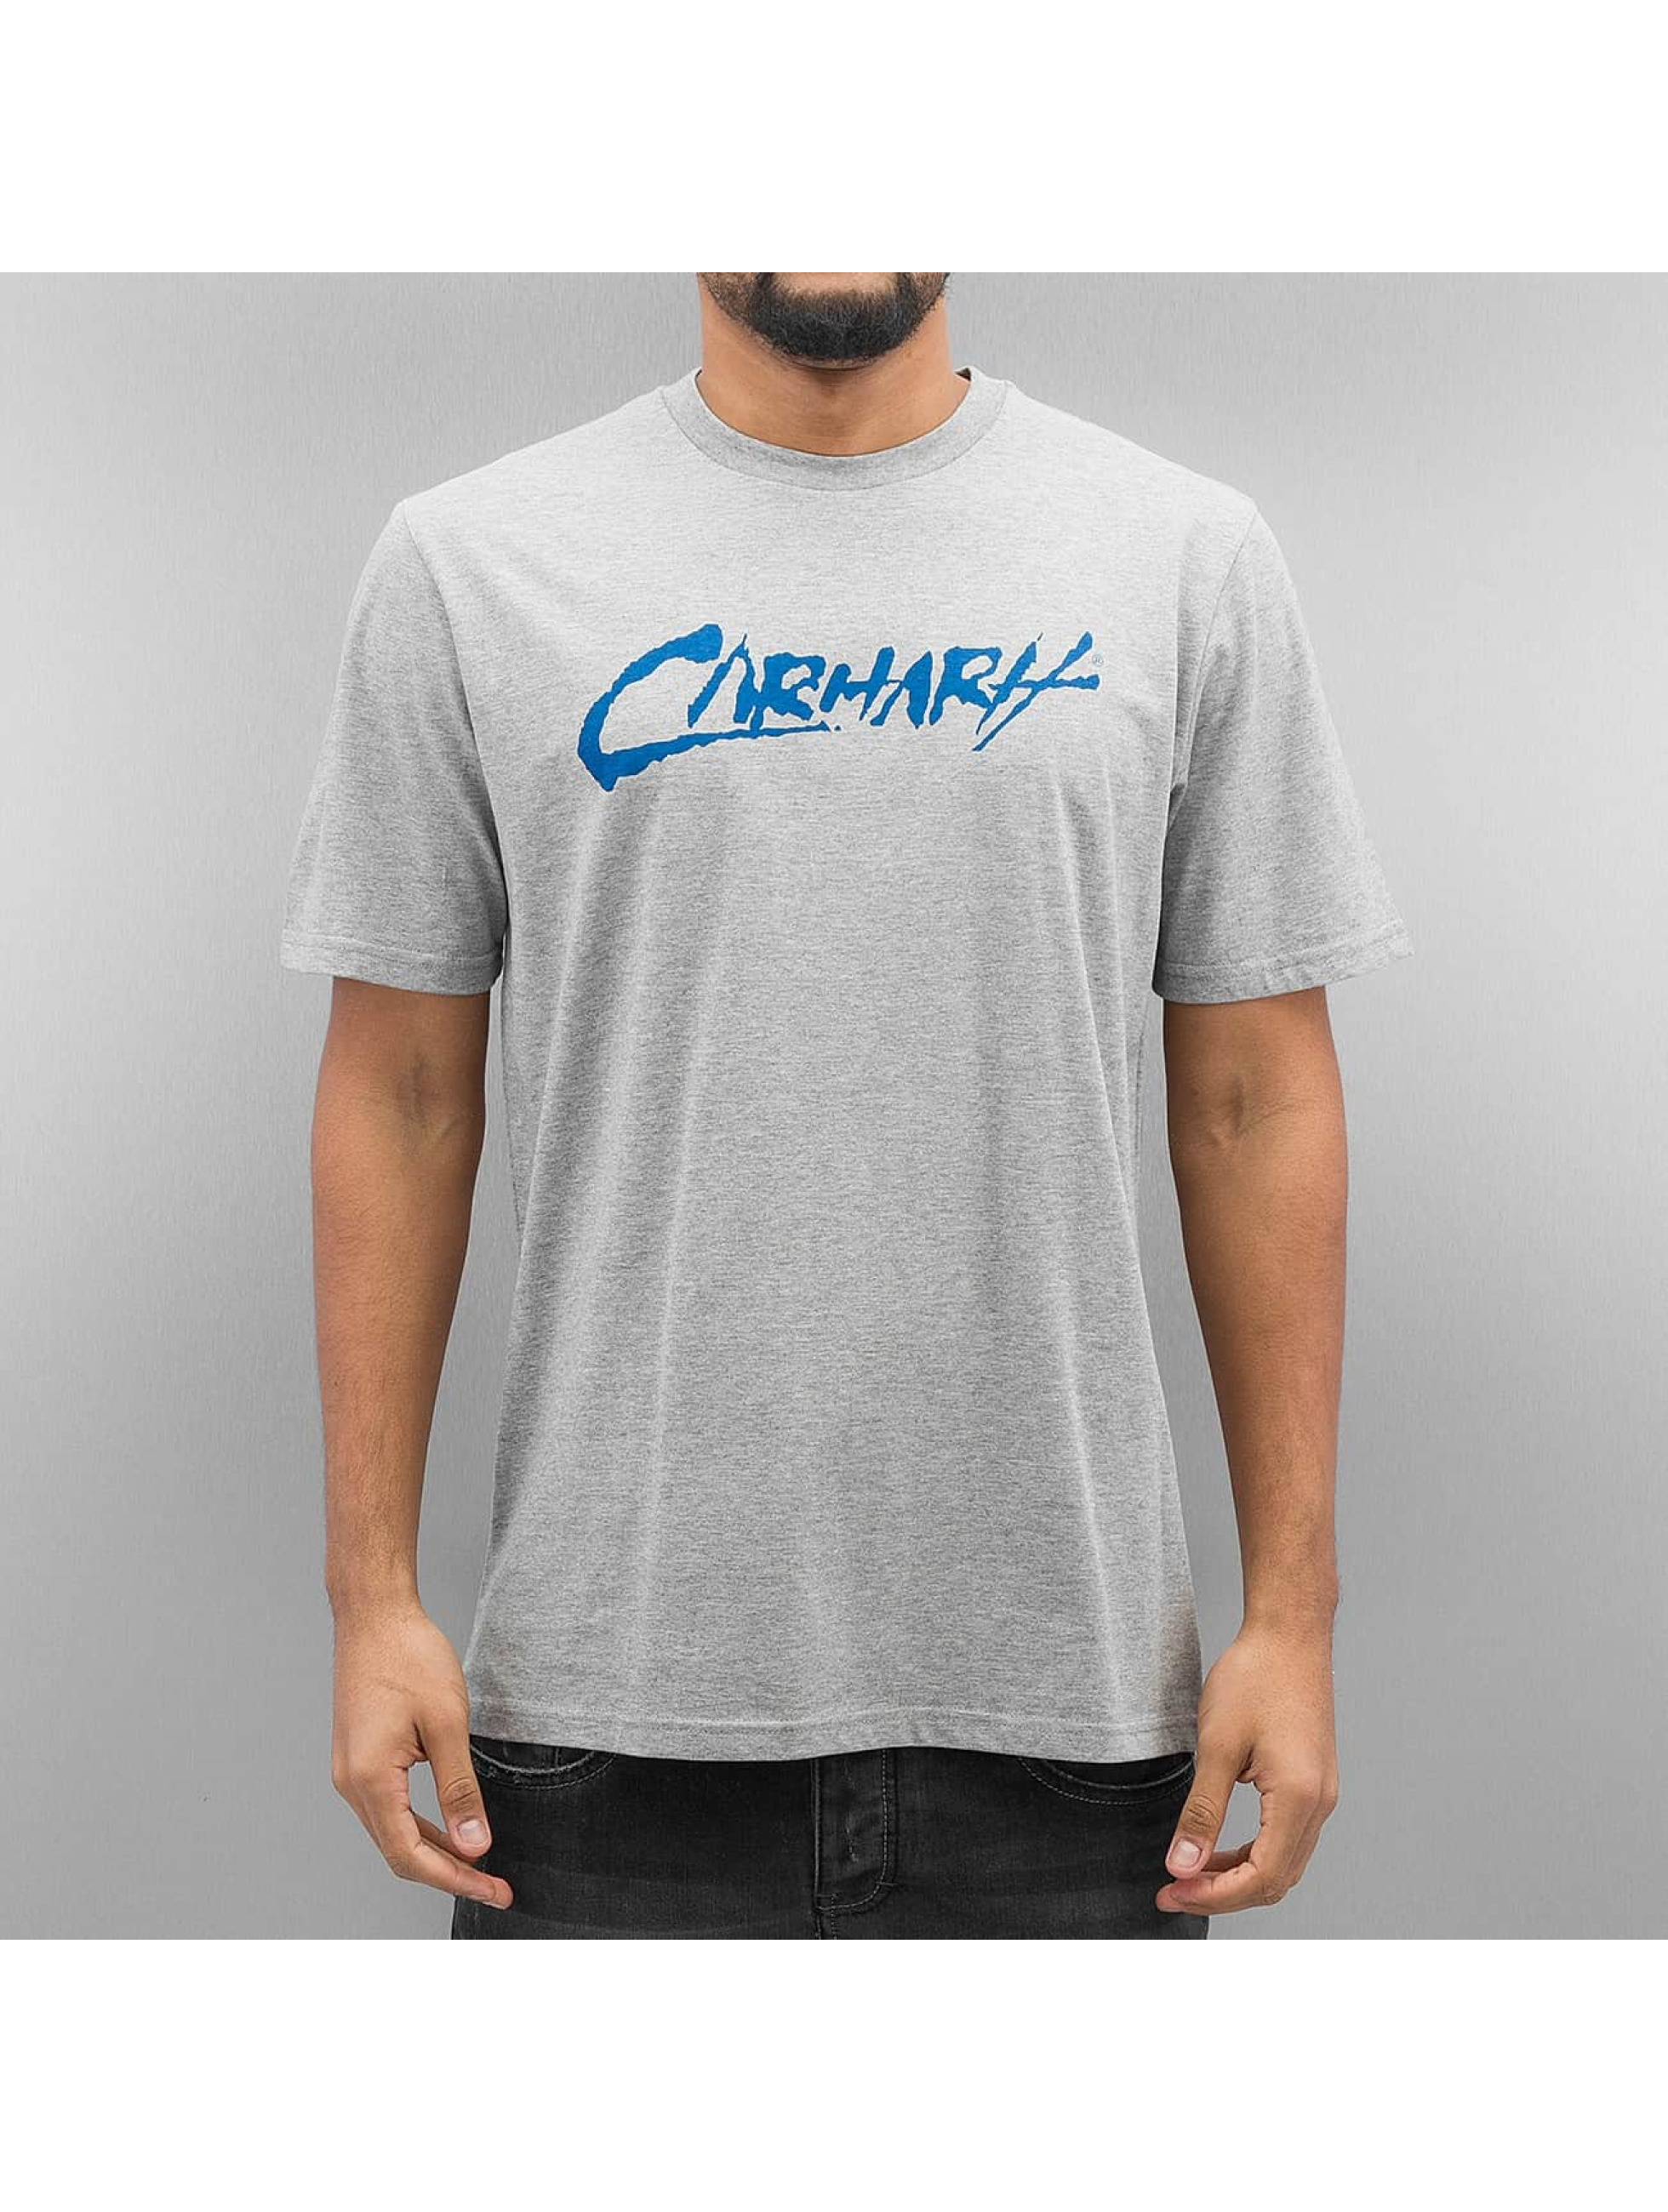 Carhartt WIP T-Shirt S/S Paint grey